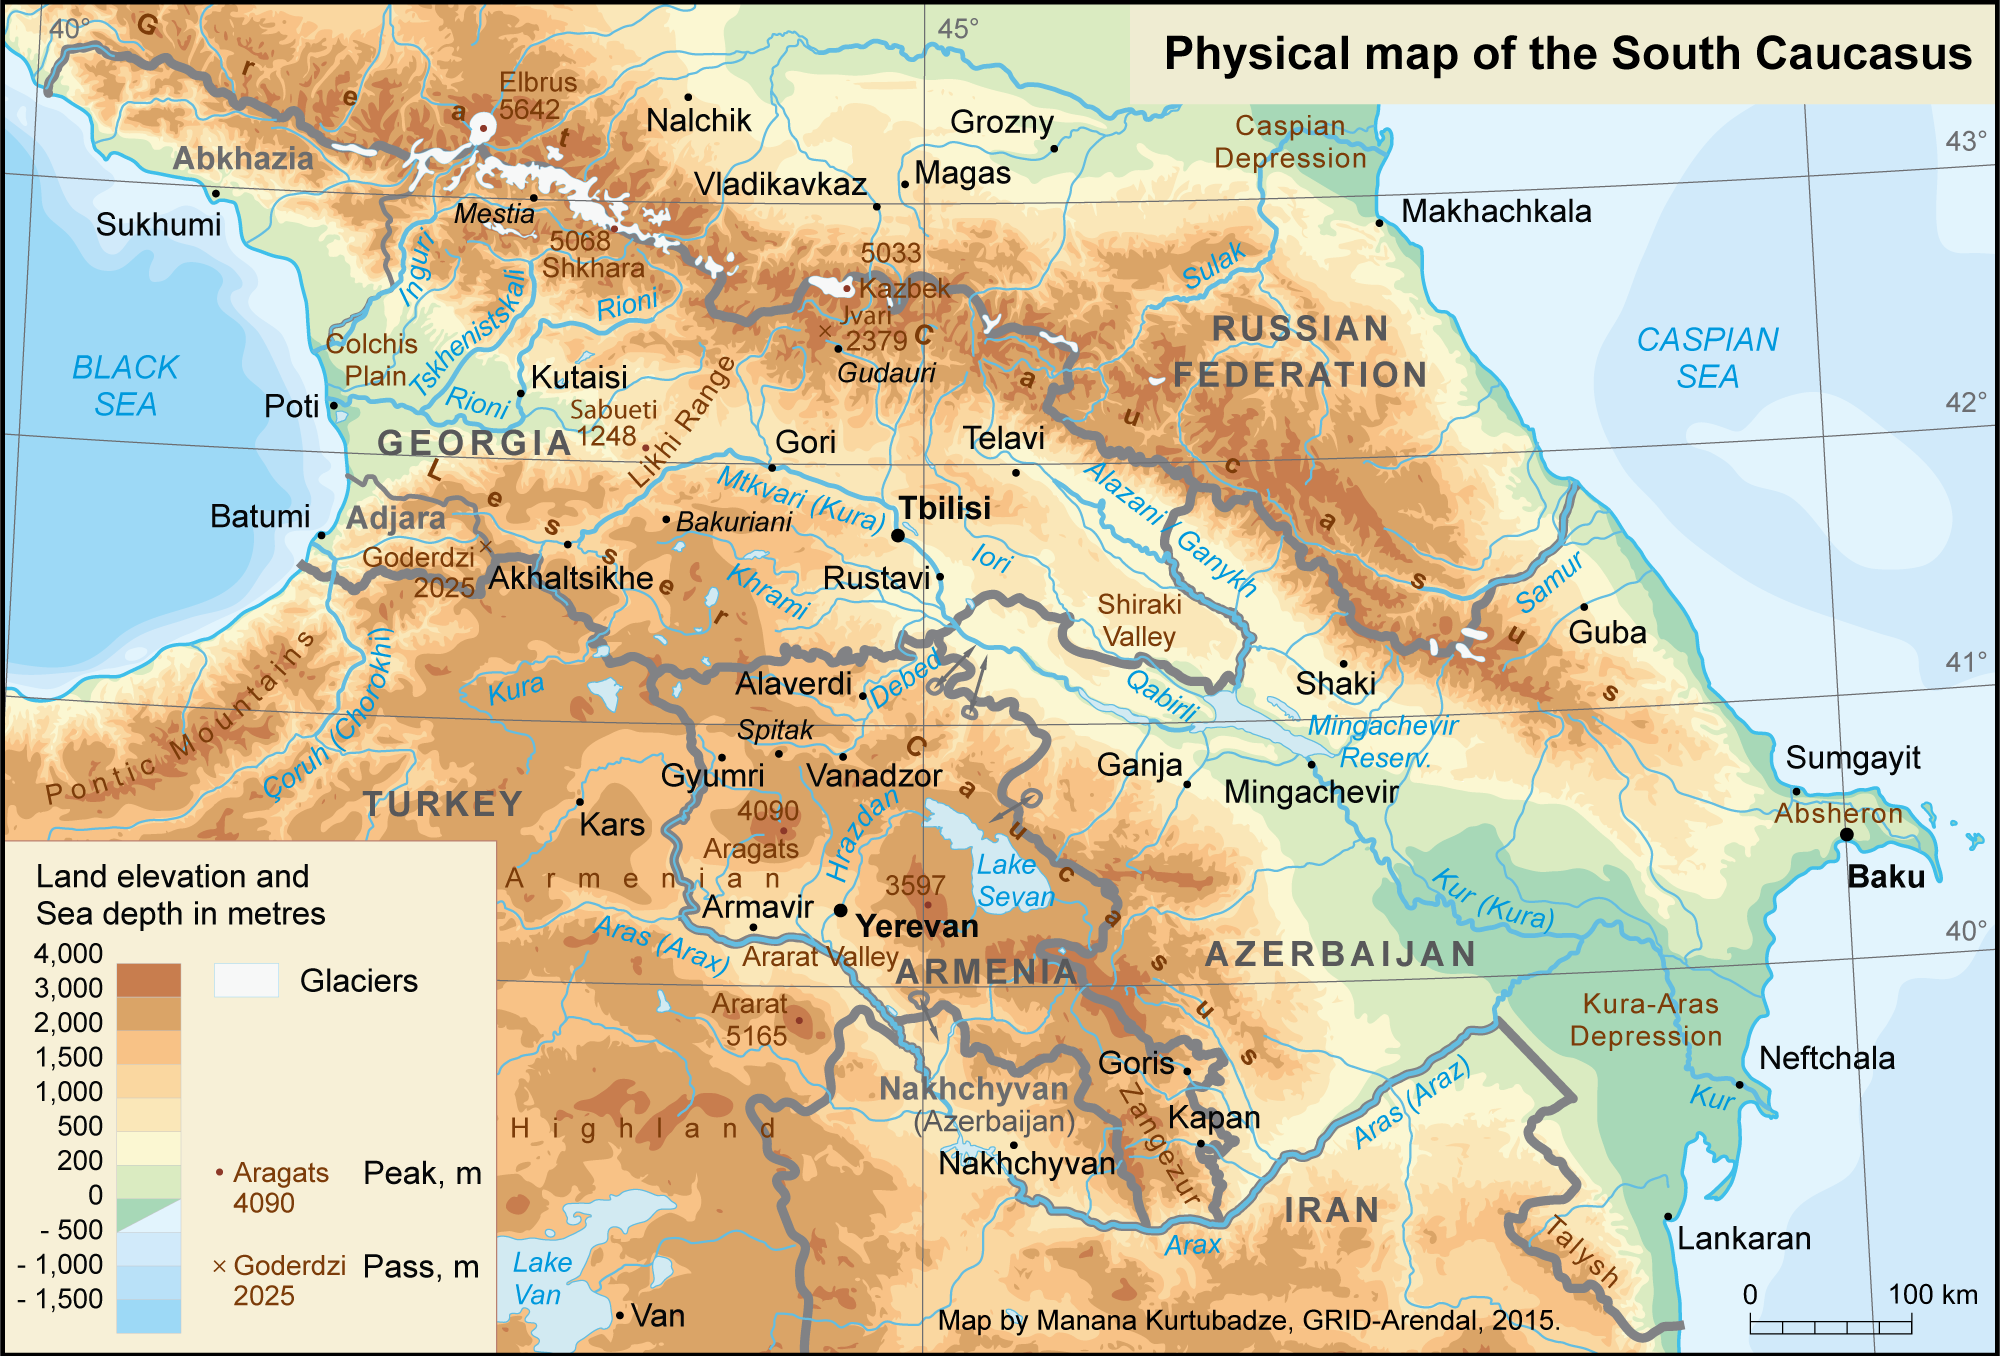 Physical map of the South Caucasus GRIDArendal